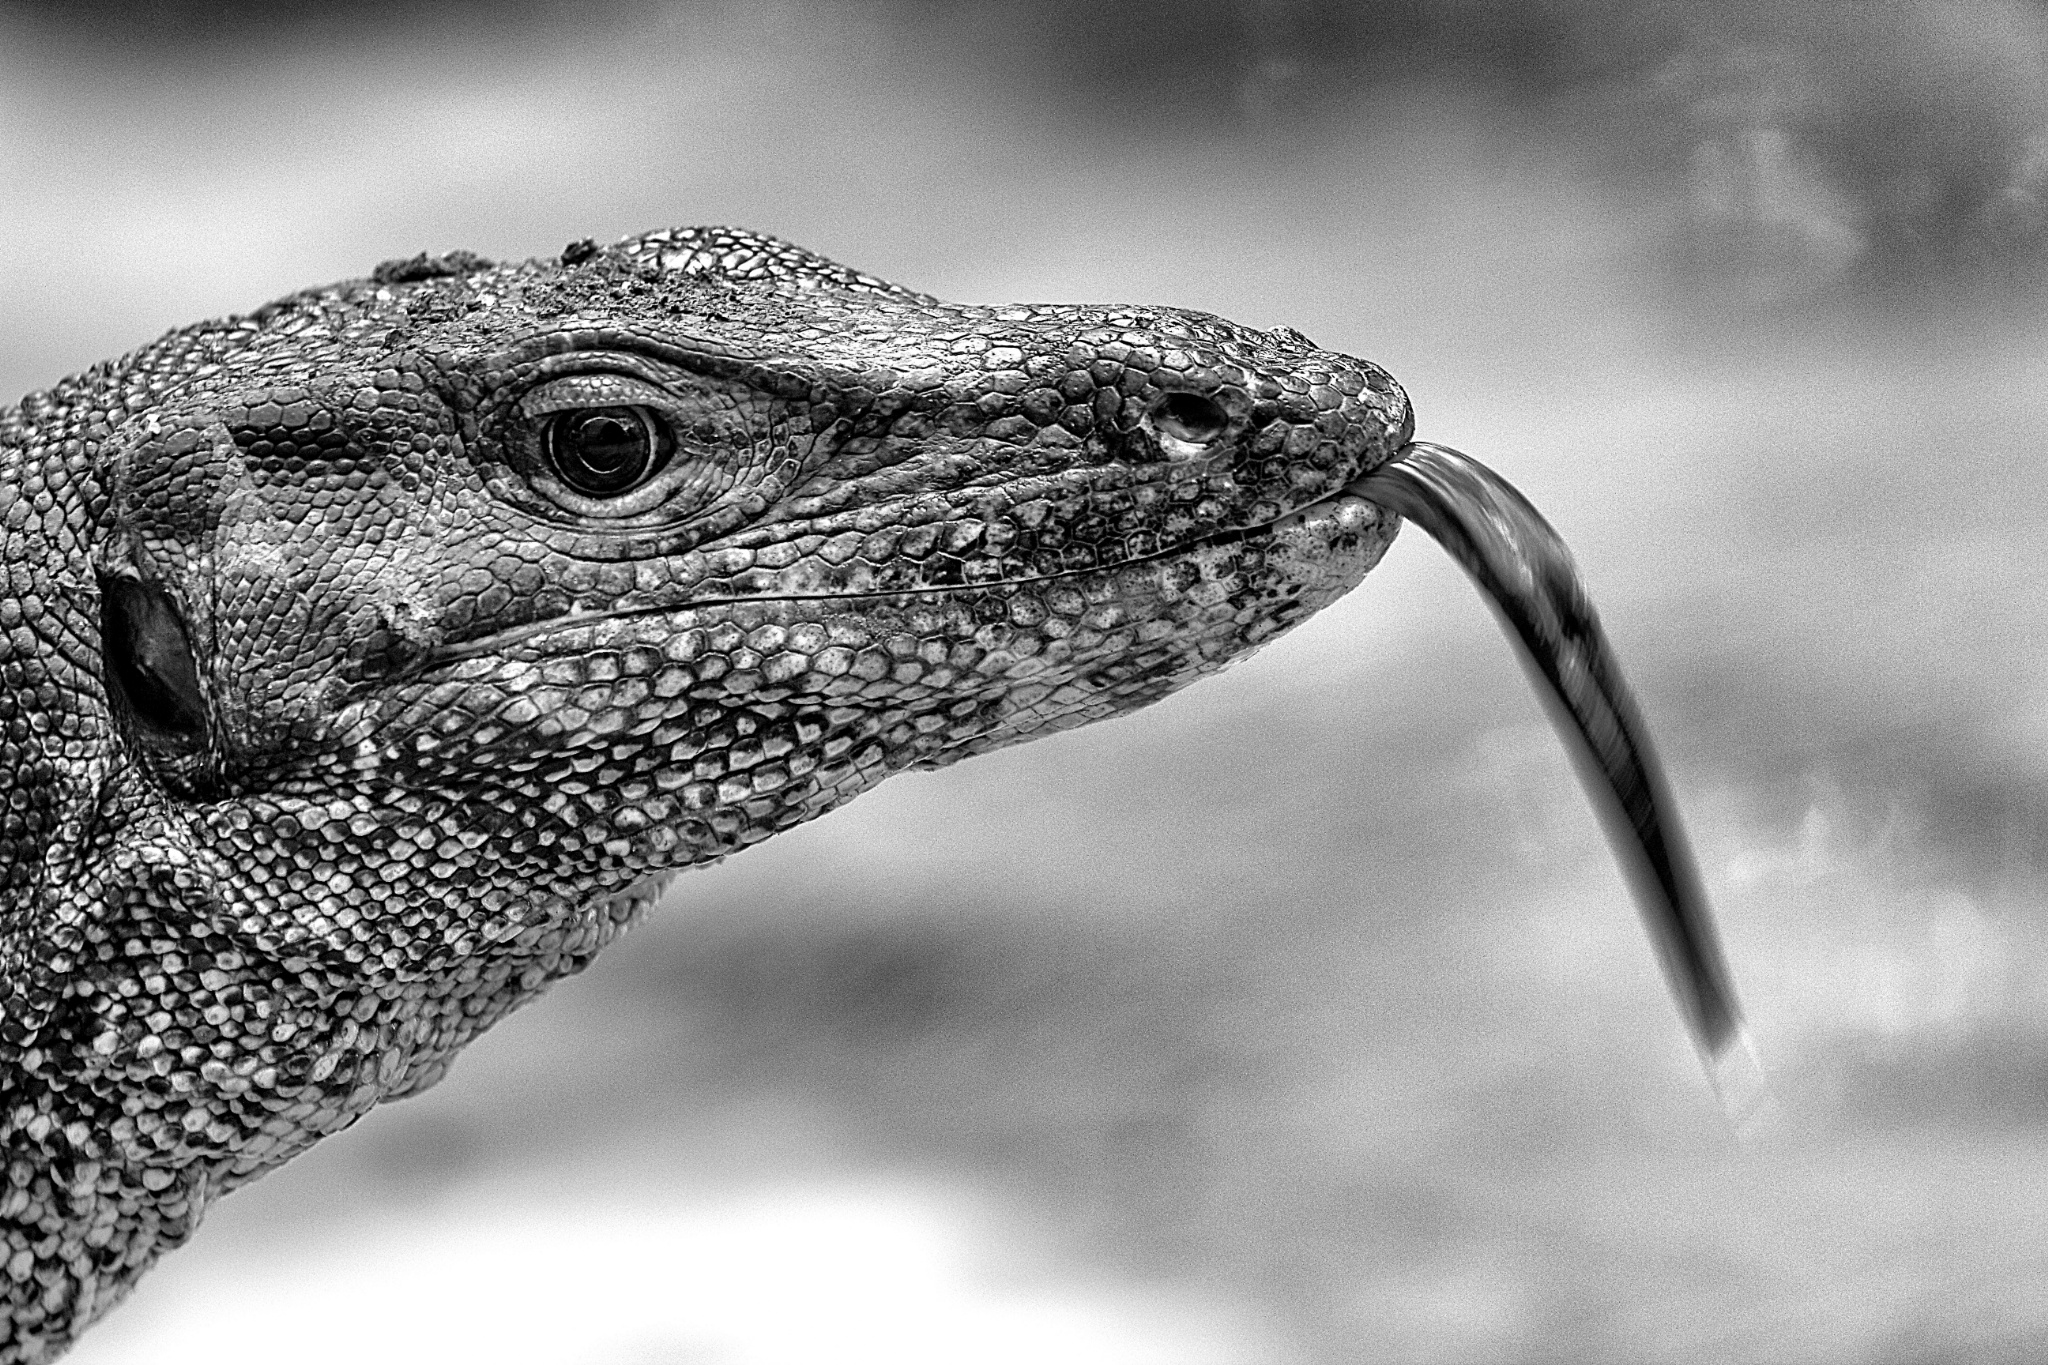 The Water Monitor Lizards Of Sungei Buloh Thesmartlocal